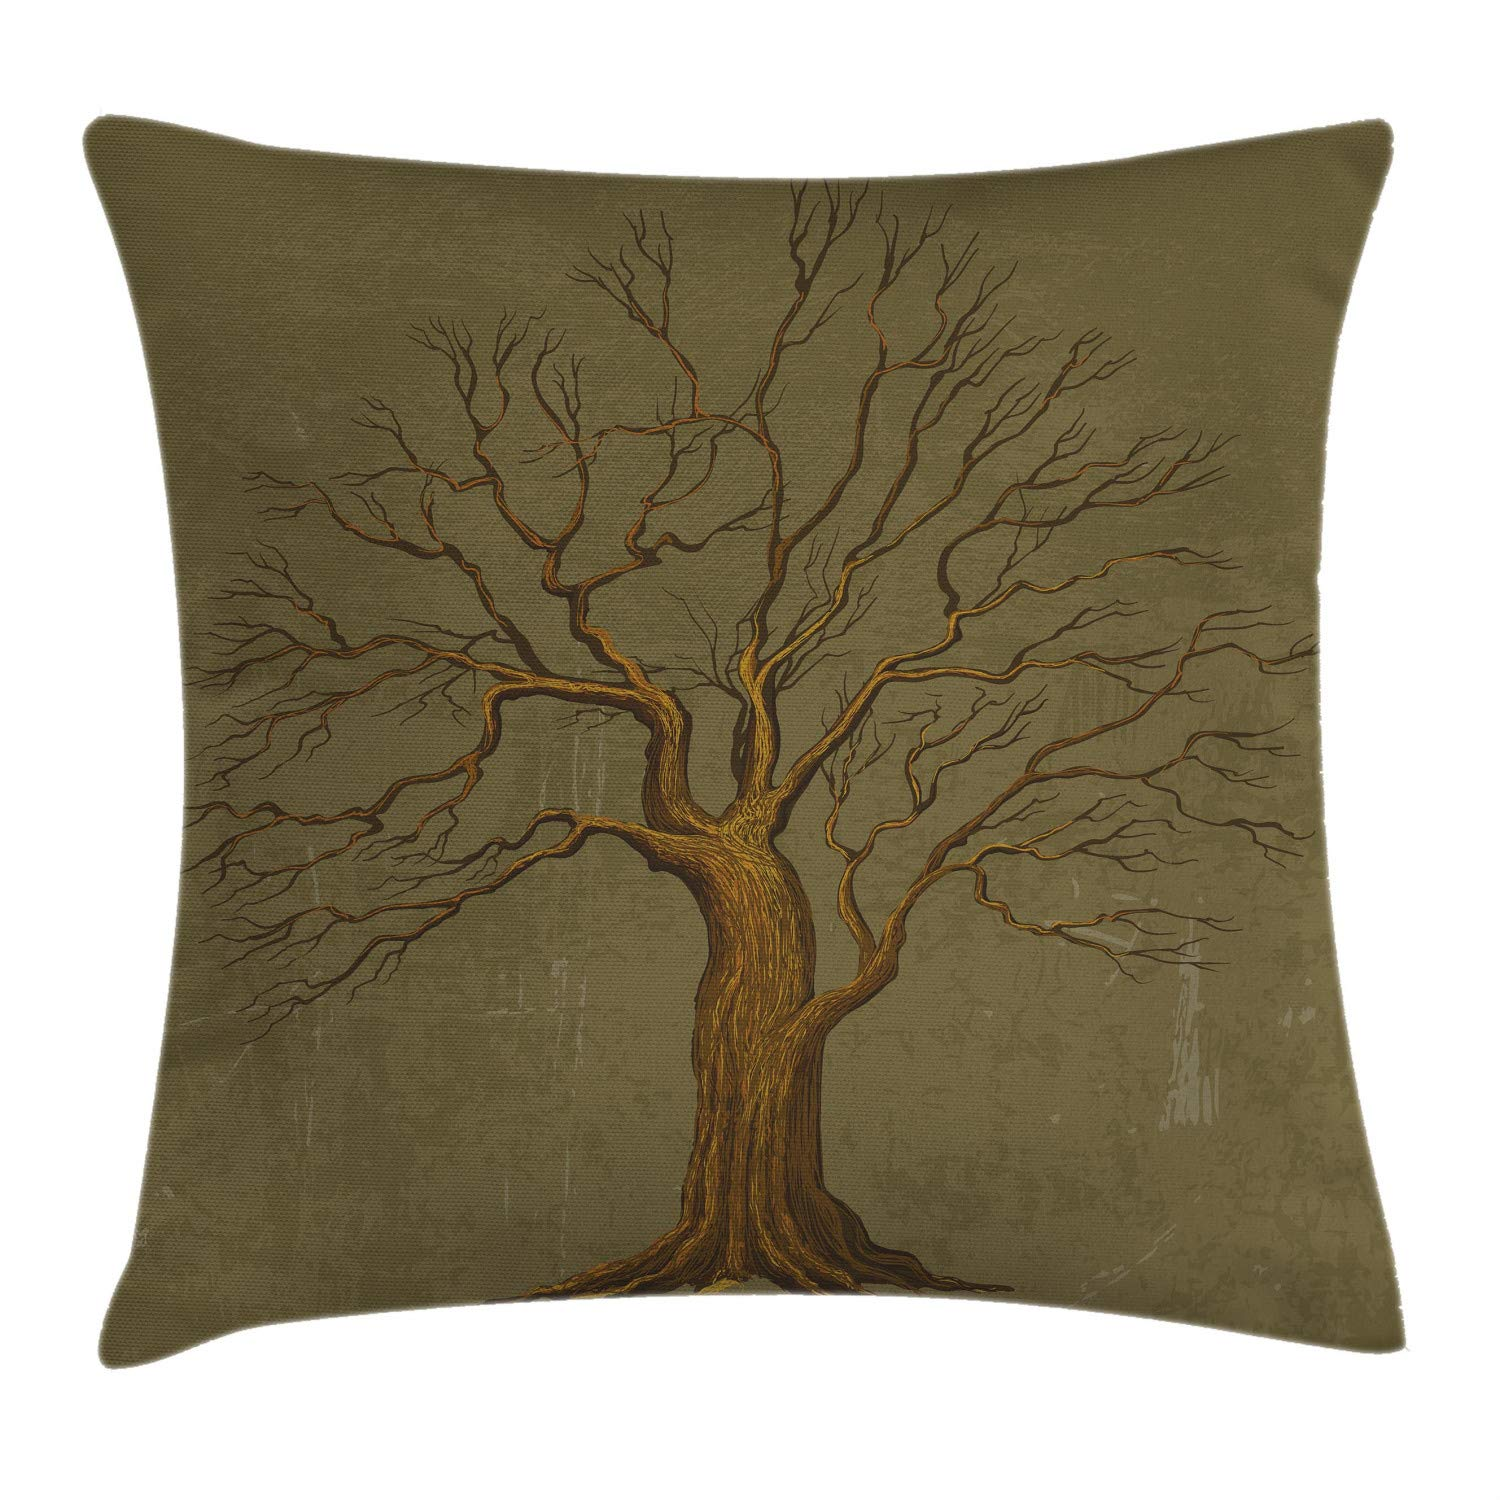 Ambesonne Tree Throw Pillow Cushion Cover, Illustration of a Big Tree on Antique Old Paper Vintage Style Artwork Design Print, Decorative Square Accent Pillow Case, 24'' X 24'', Olive Green